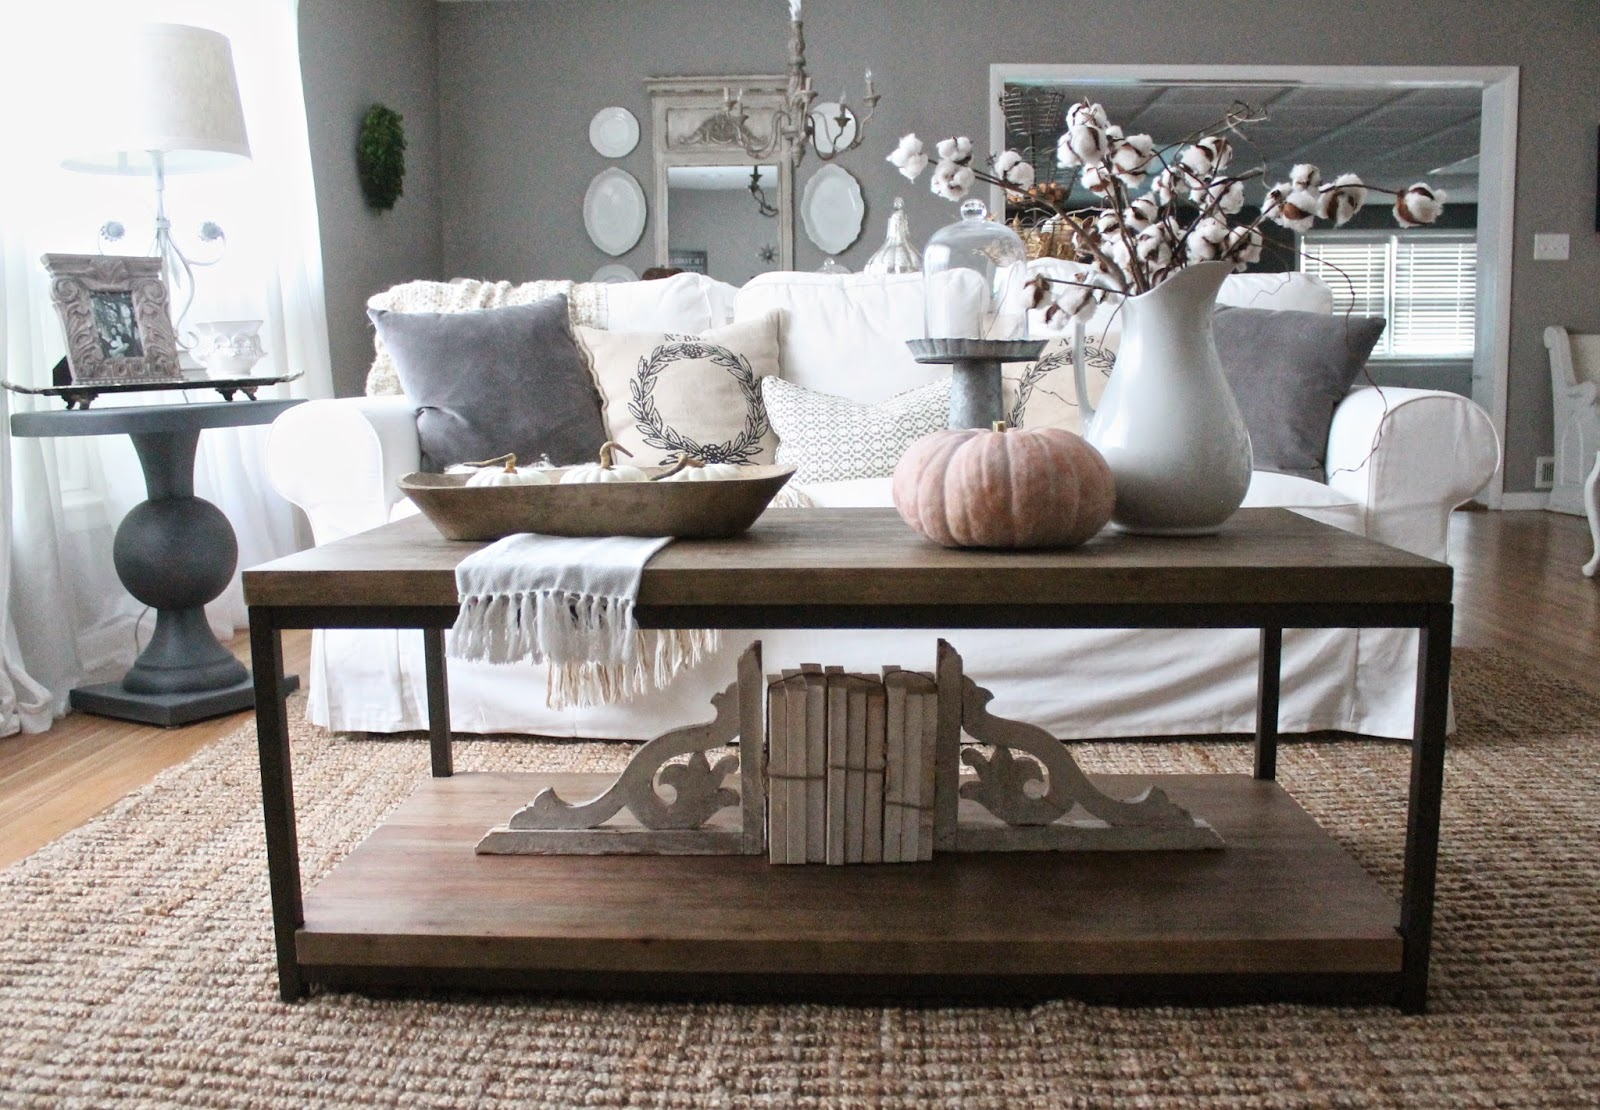 Coffee Table Styling 3 Tips For Coffee Table Styling & A Video  Harbour Breeze Home